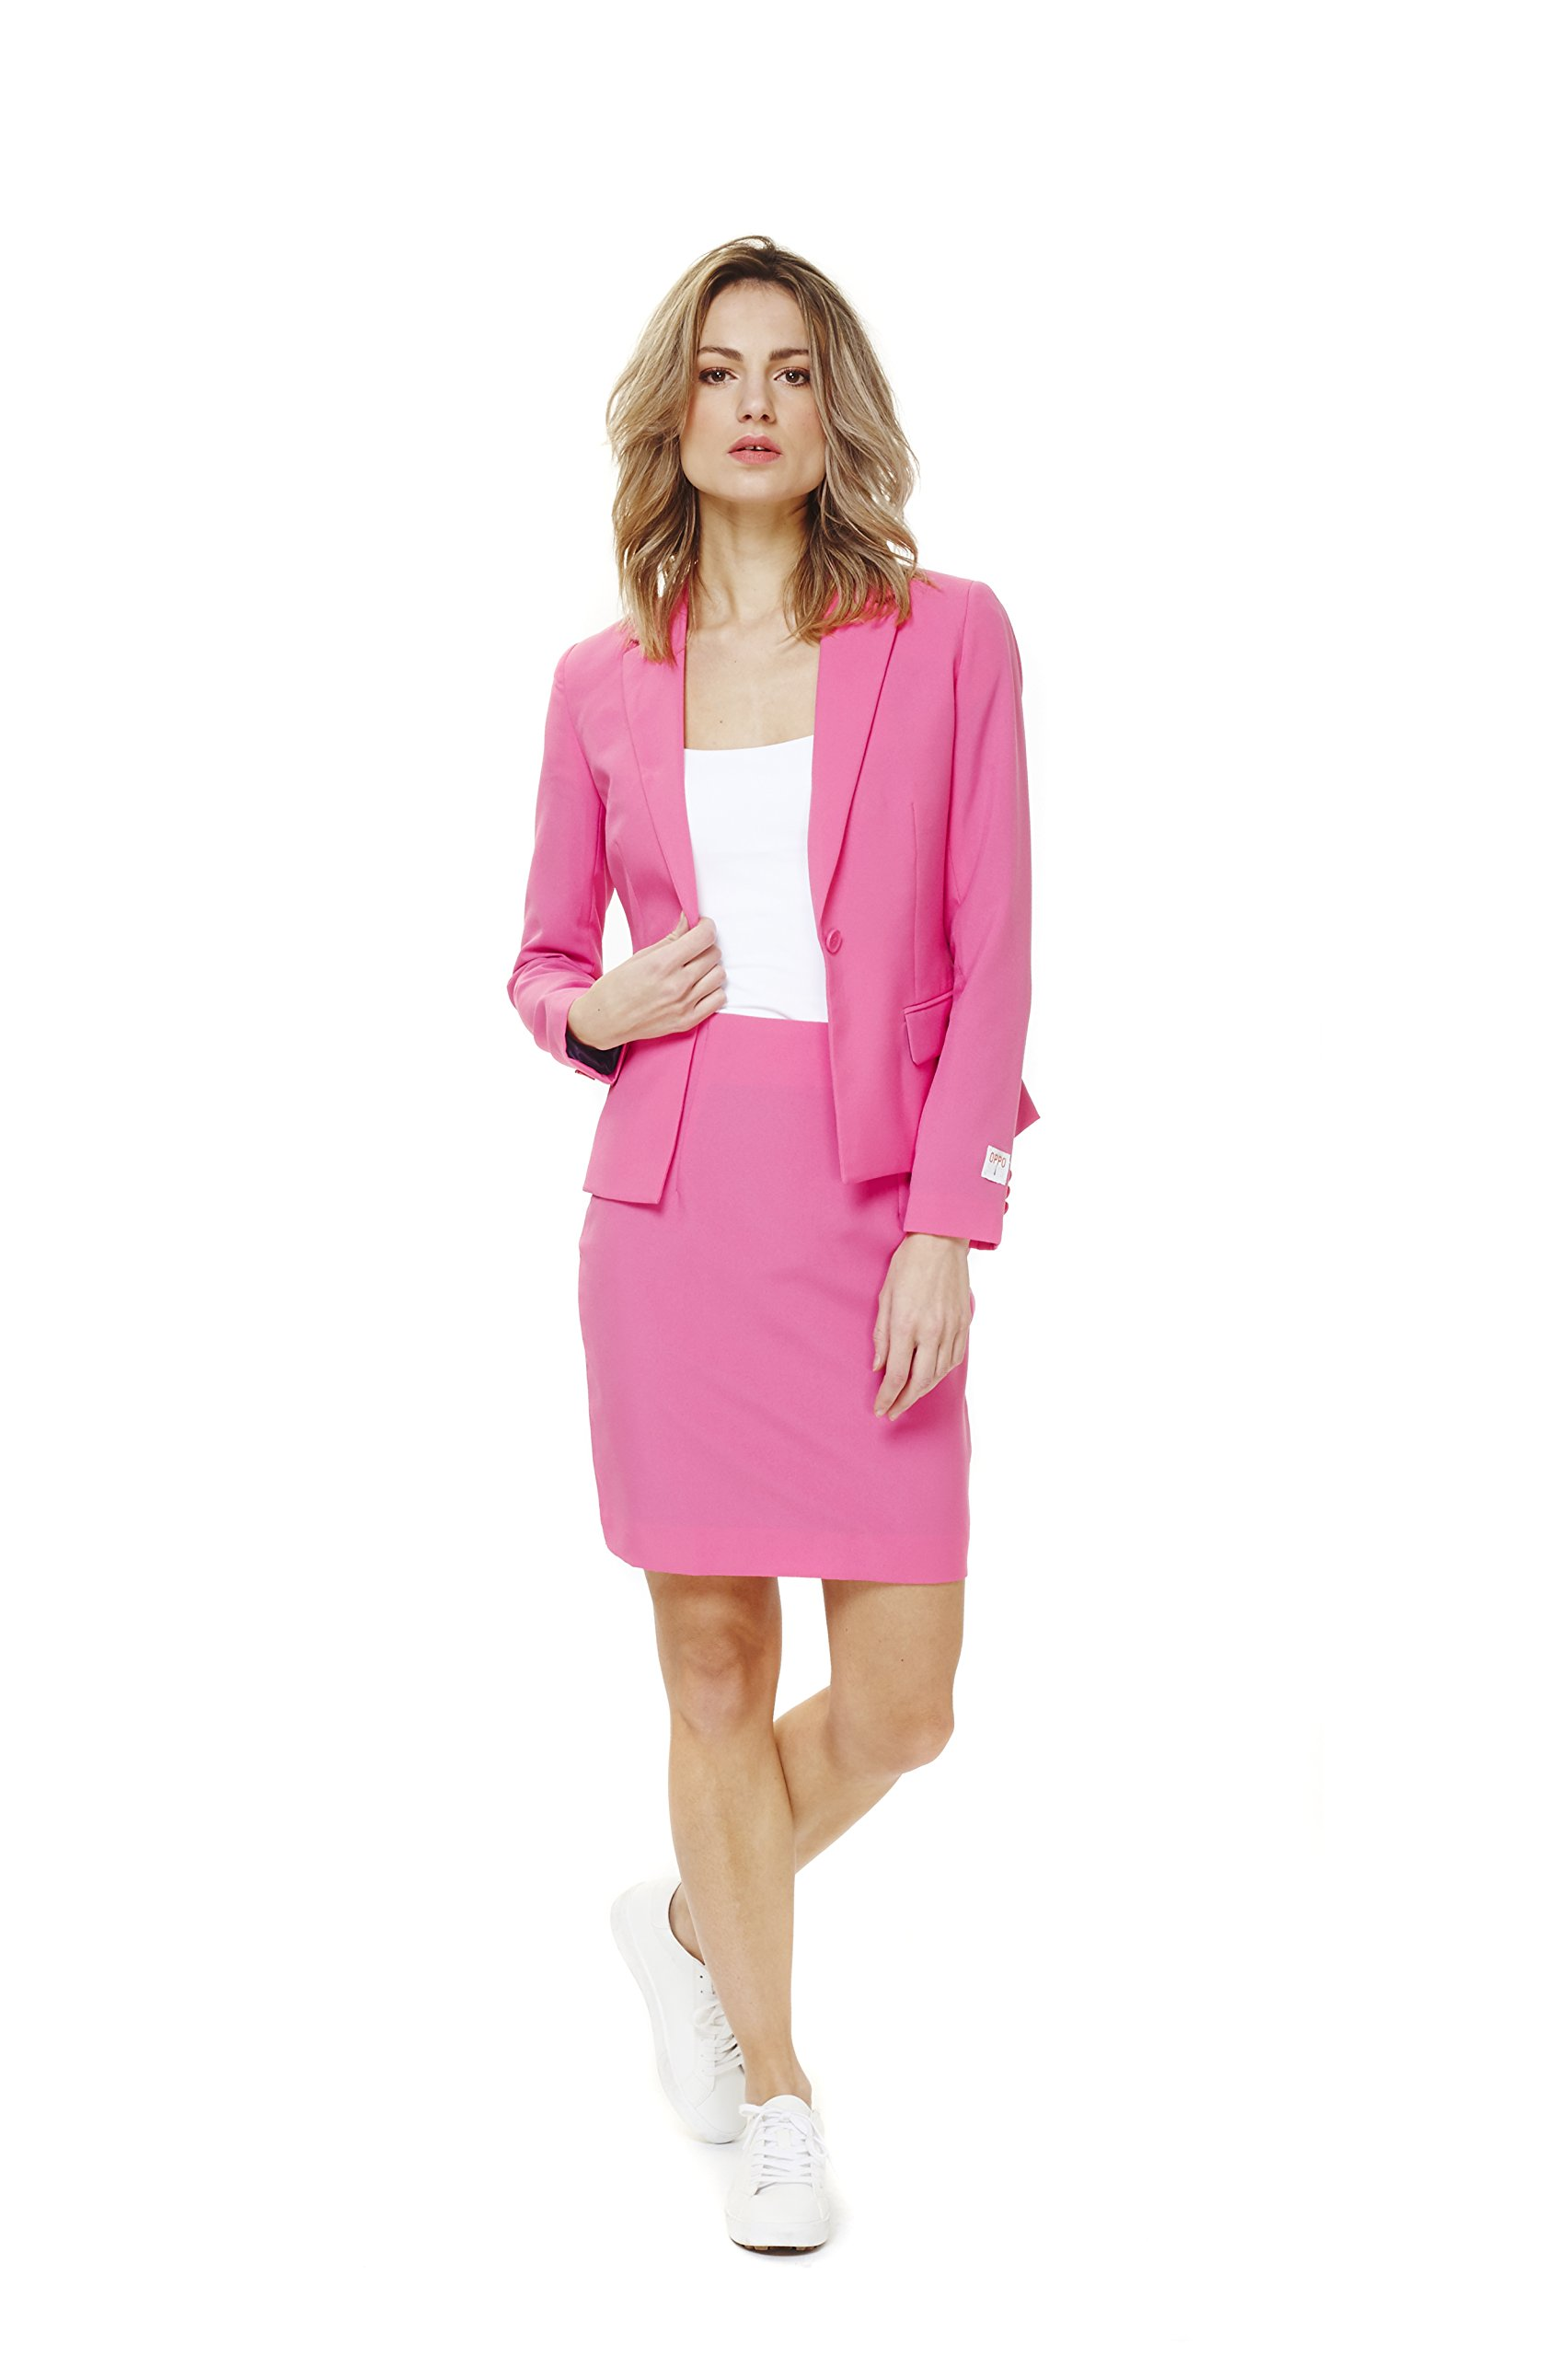 Opposuits Womens 'Ms. Pink' Party Suit by, 4